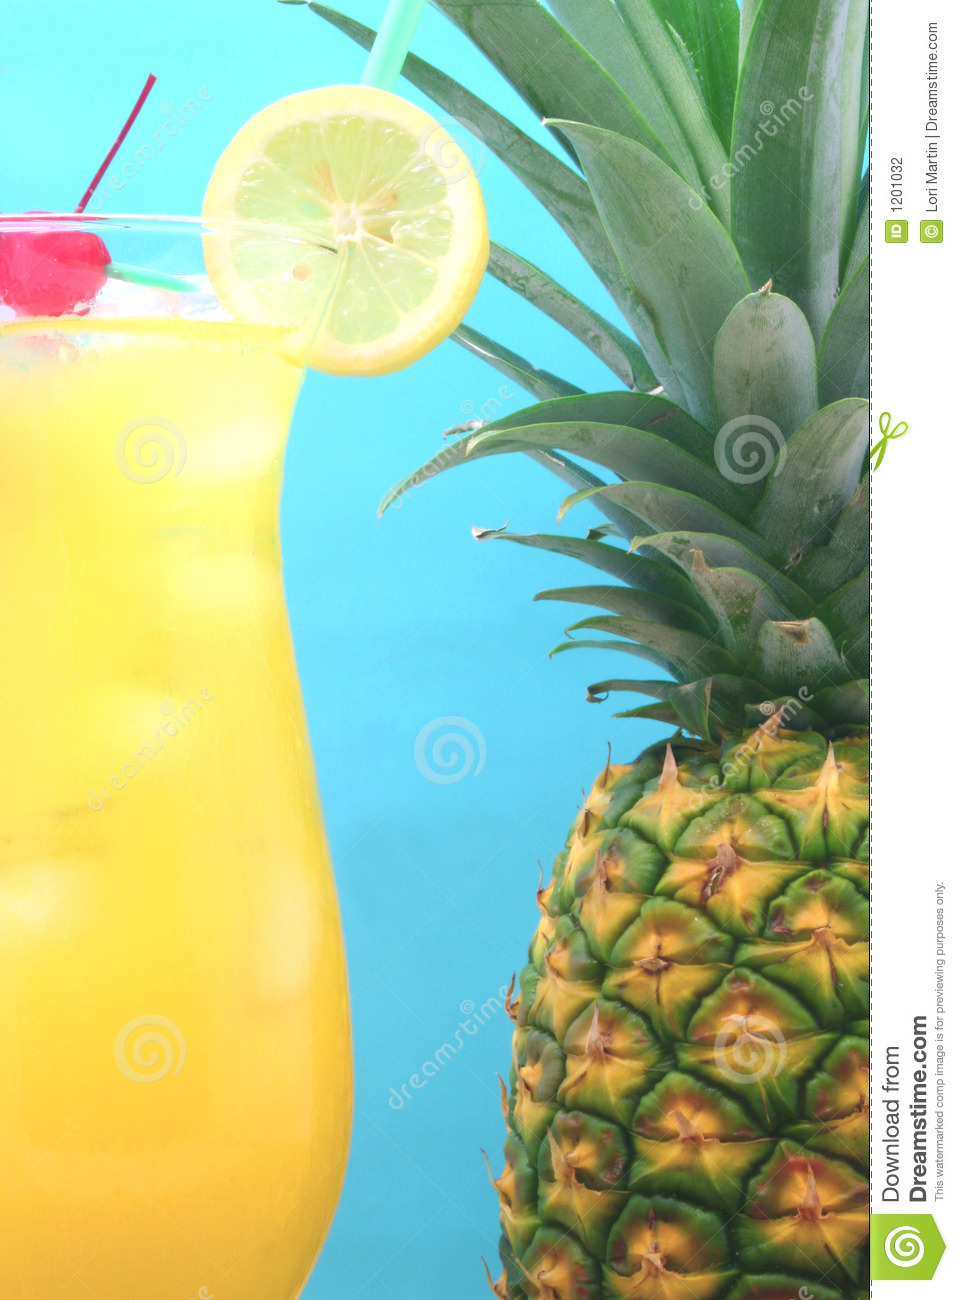 Pineapple and Drink